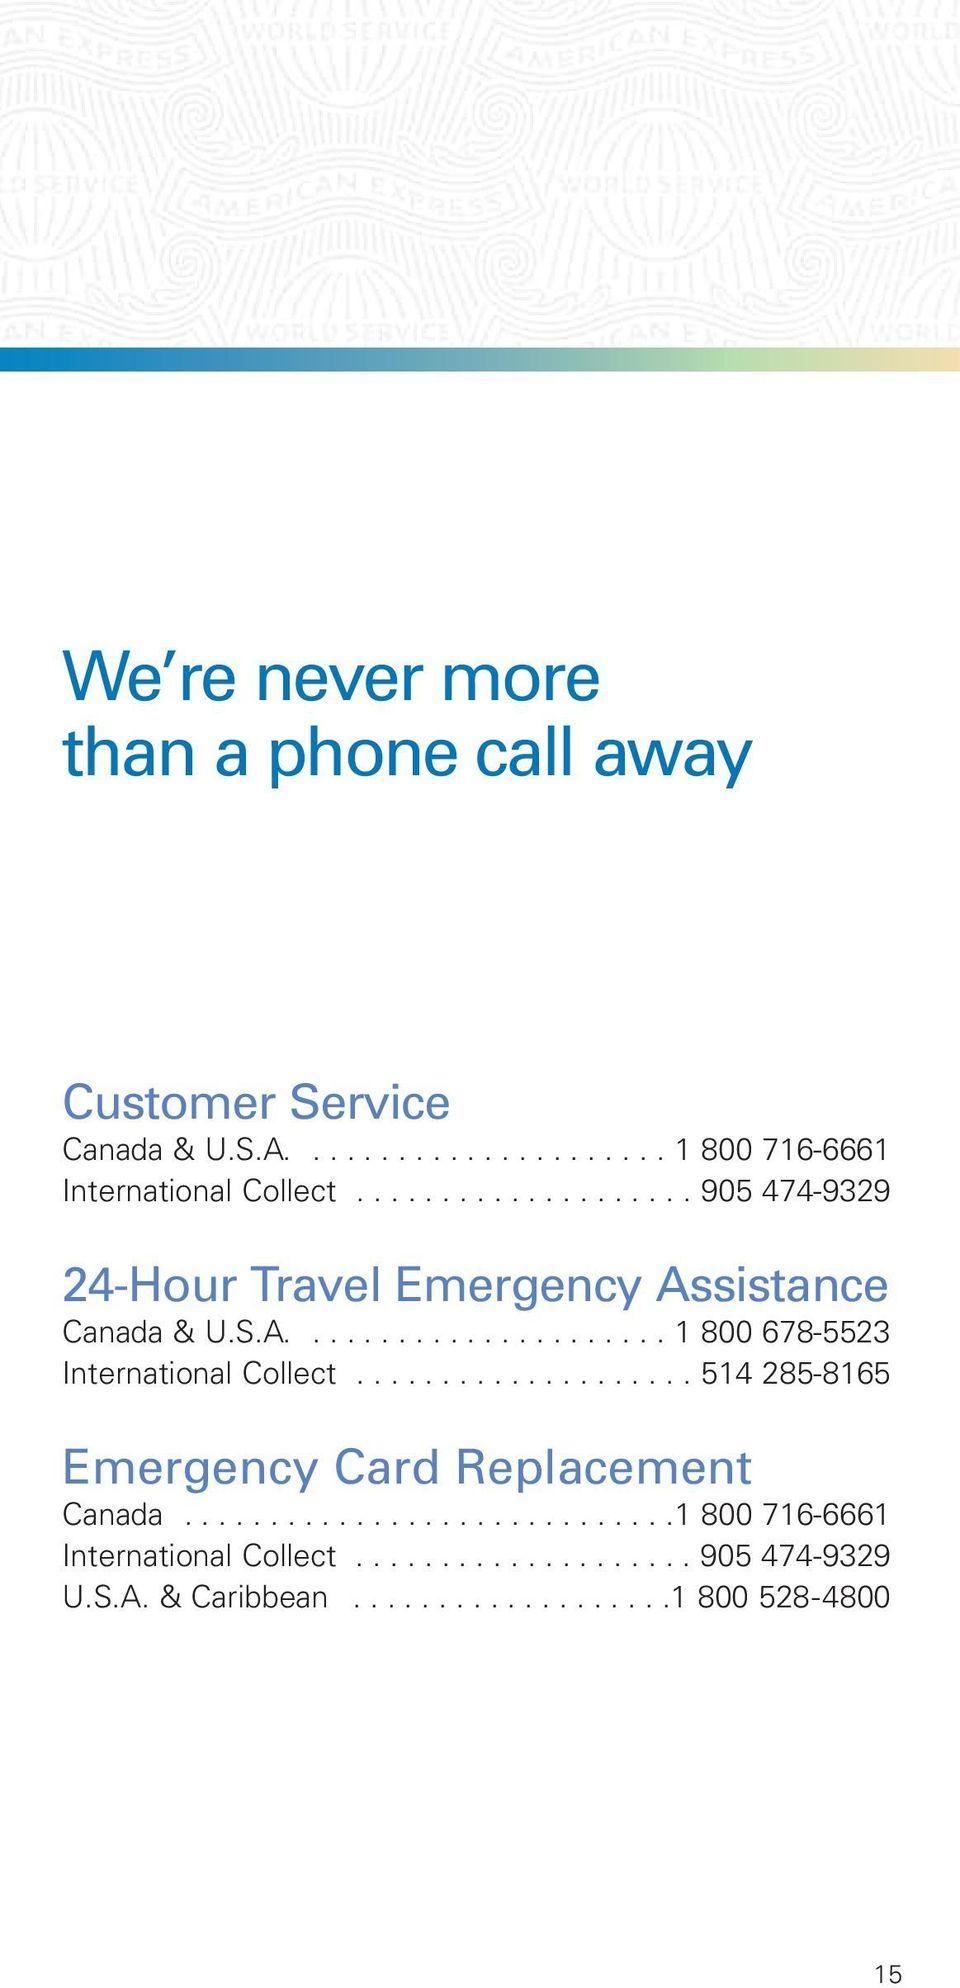 ................... 514 285-8165 Emergency Card Replacement Canada.............................1 800 716-6661 International Collect.